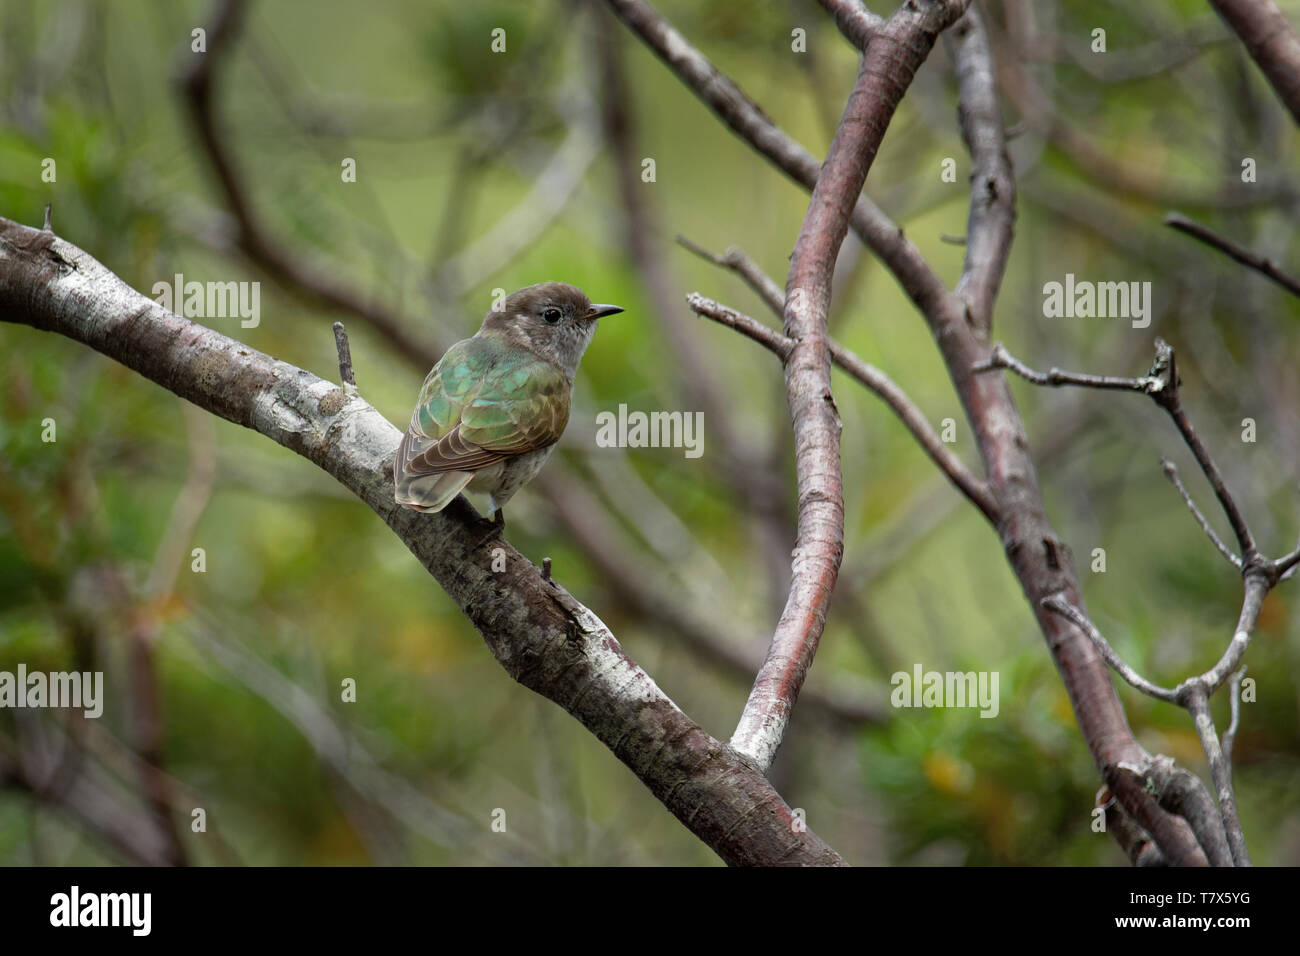 Shining Bronze Cuckoo - Chrysococcyx lucidus - species in the family Cuculidae, Australia, Indonesia, New Caledonia, New Zealand, Papua New Guinea, So - Stock Image